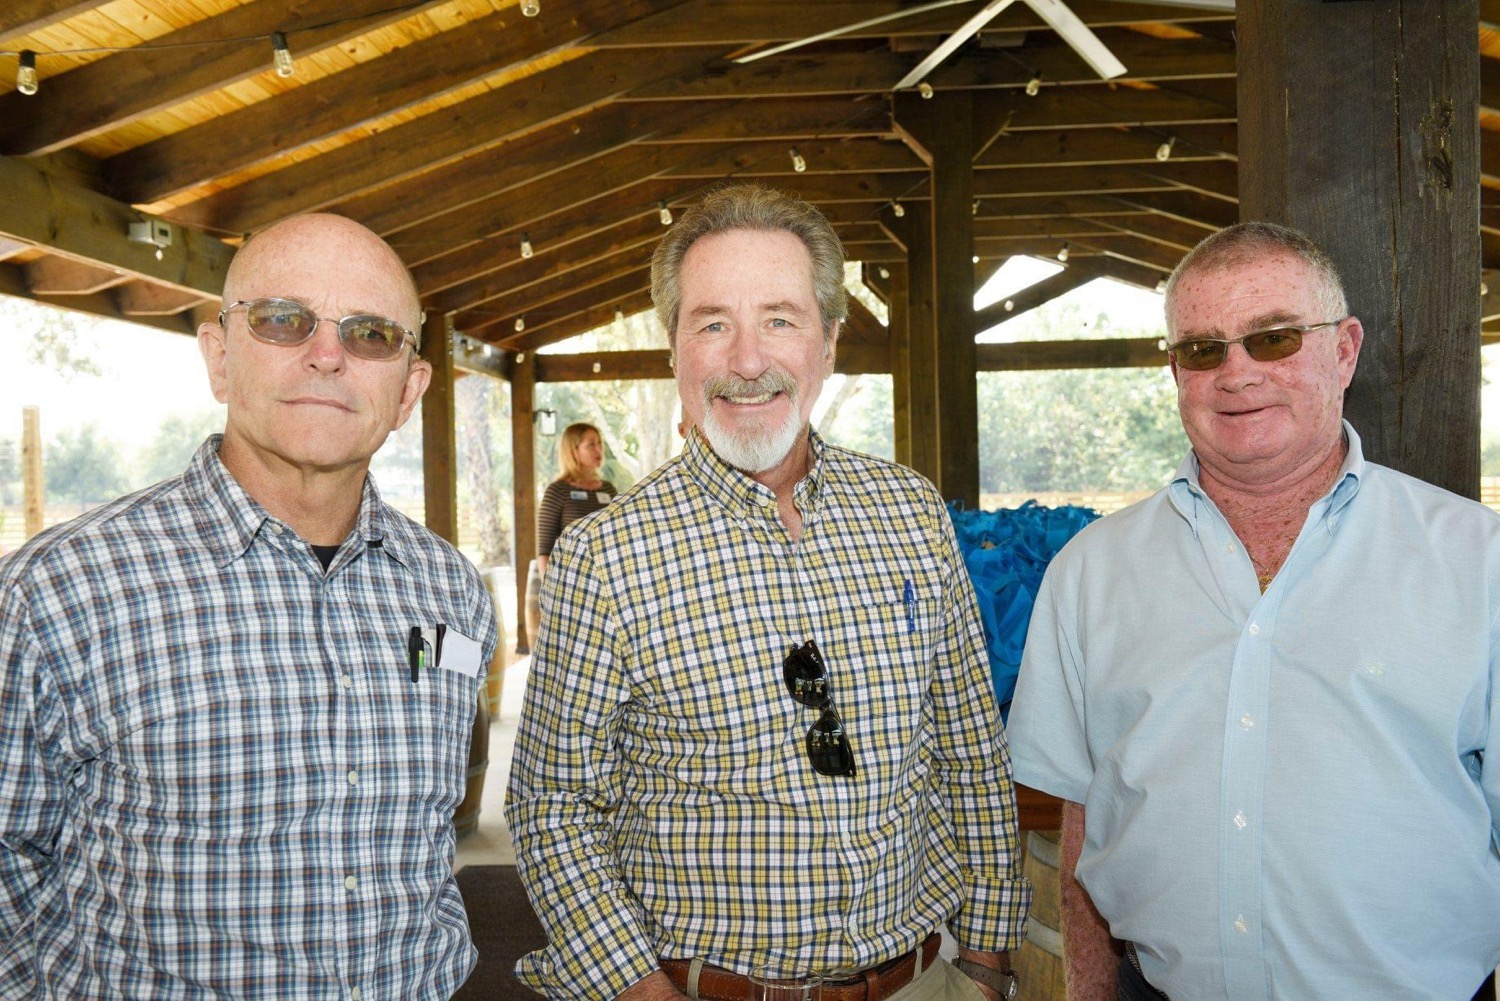 Welcome to Carl Frost with Kai-Kai Farms and Martin County Board of County Commissioners, Commission